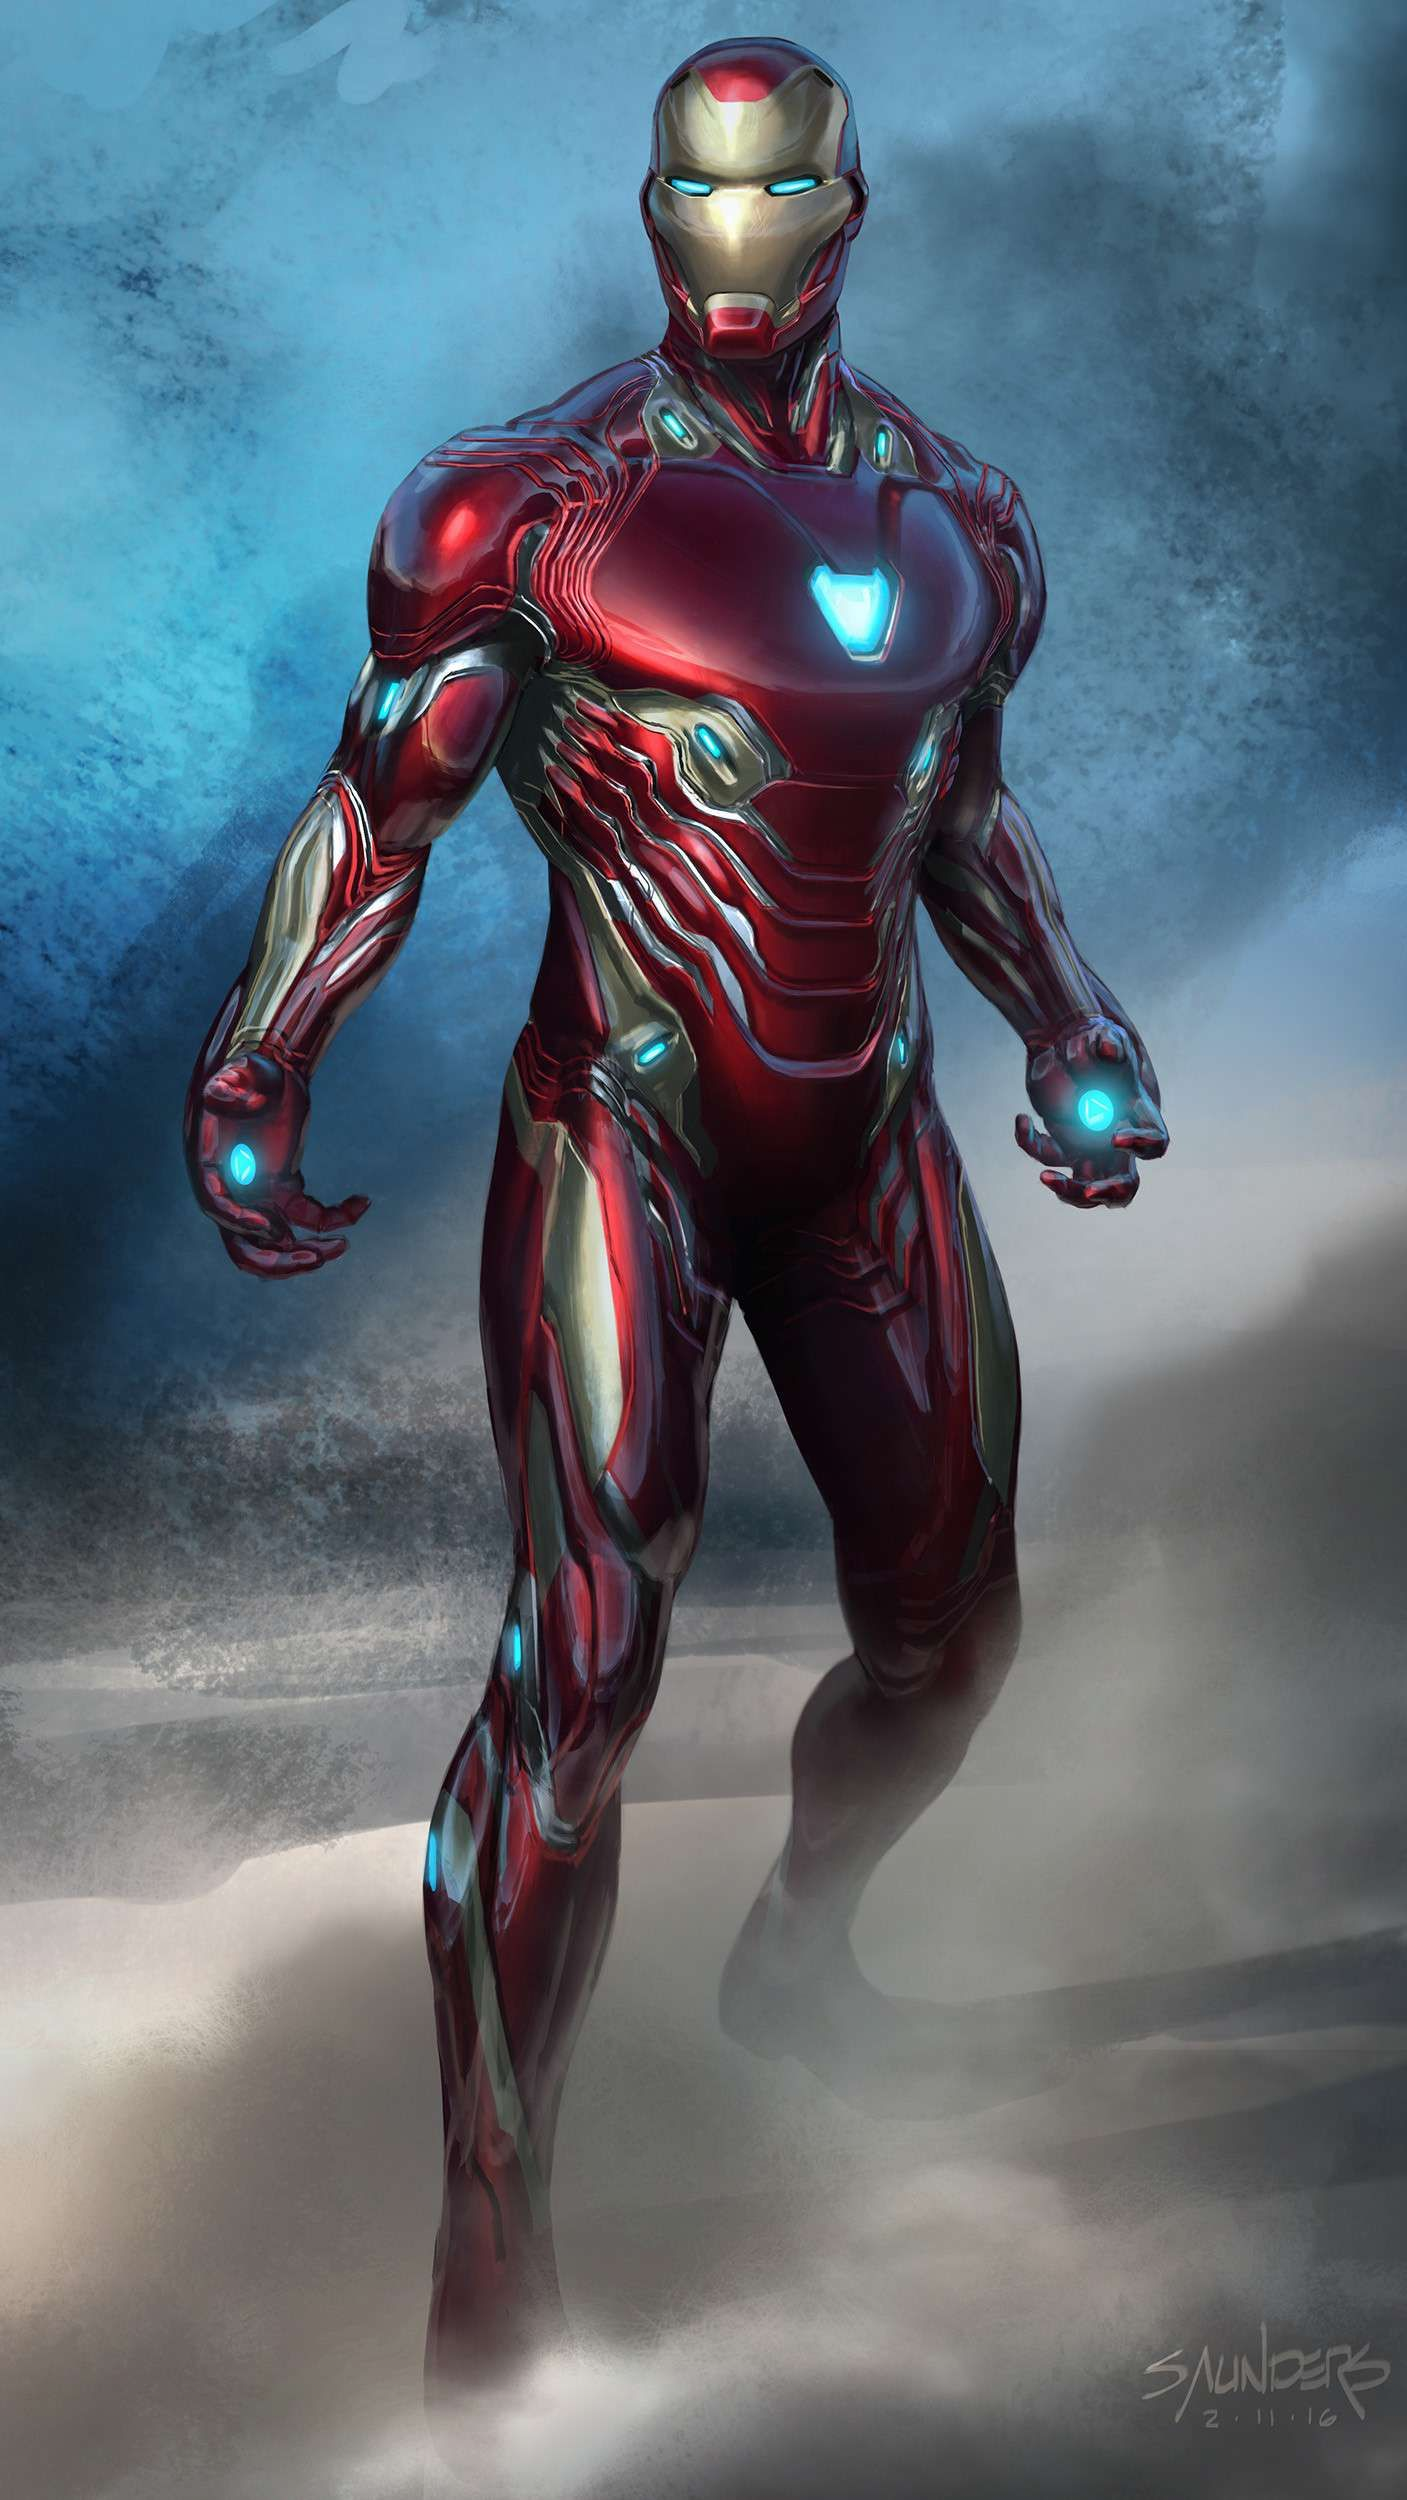 Infinity Stones Snap I Am Iron Man Iphone Wallpaper Iron Man